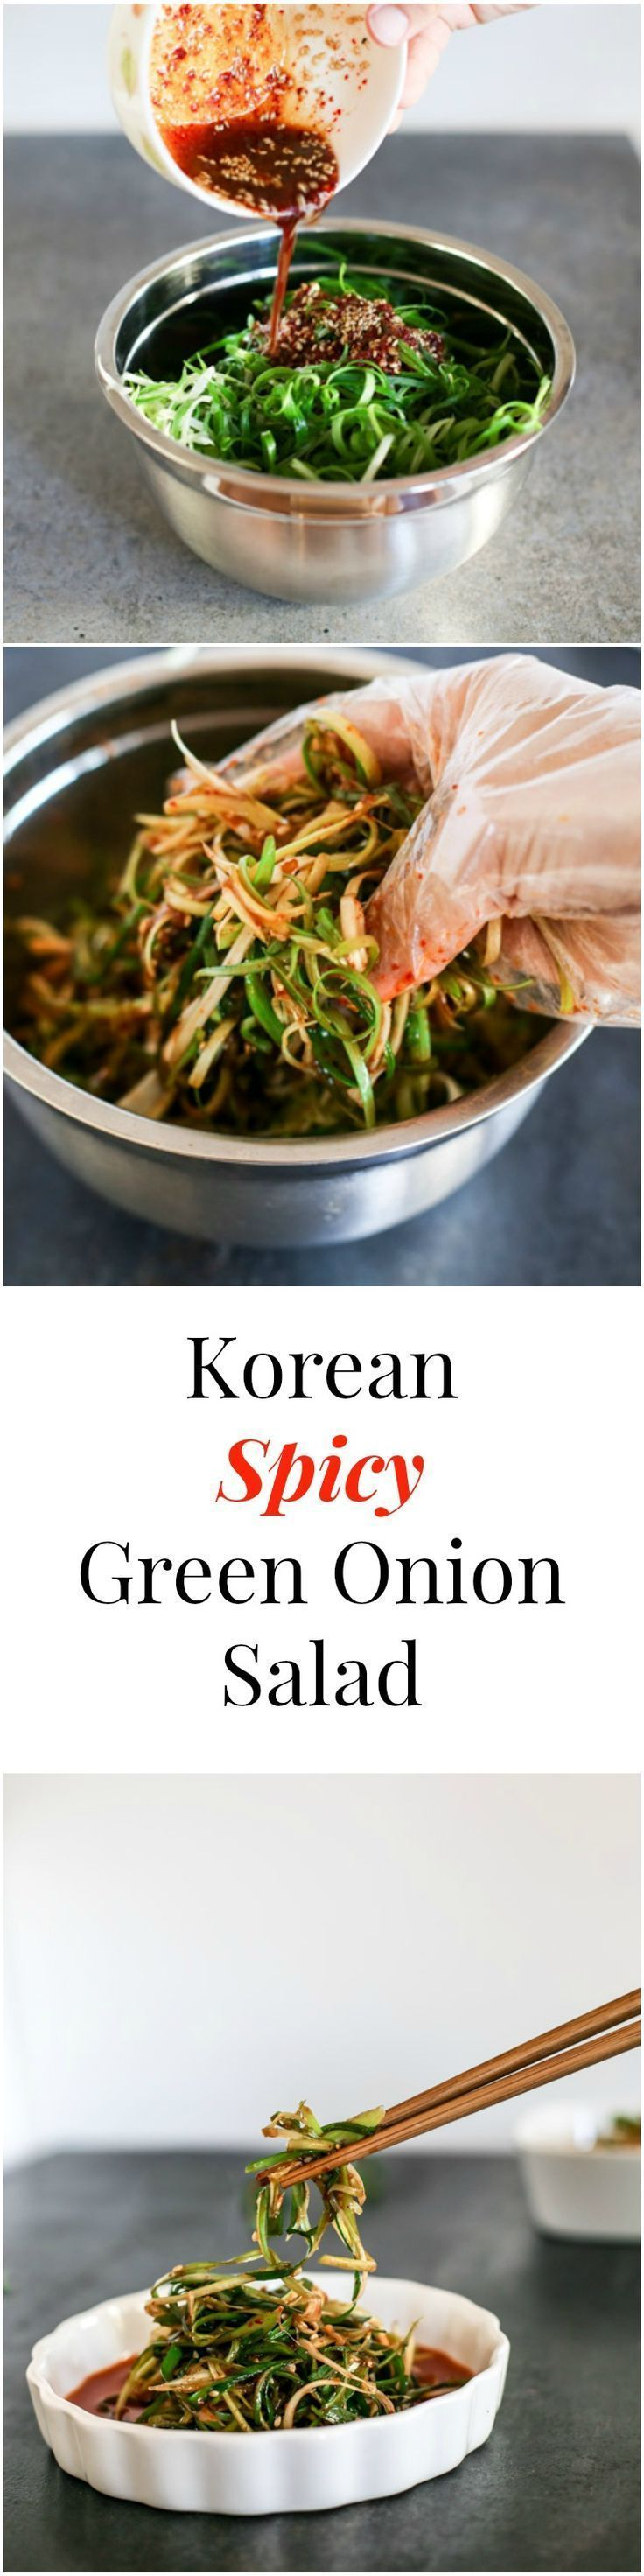 Korean Spicy Green Onion Salad. This salad is the most well-known Korean BBQ salad. It pairs very well with non-marinated meat (e.g. Korean pork belly)